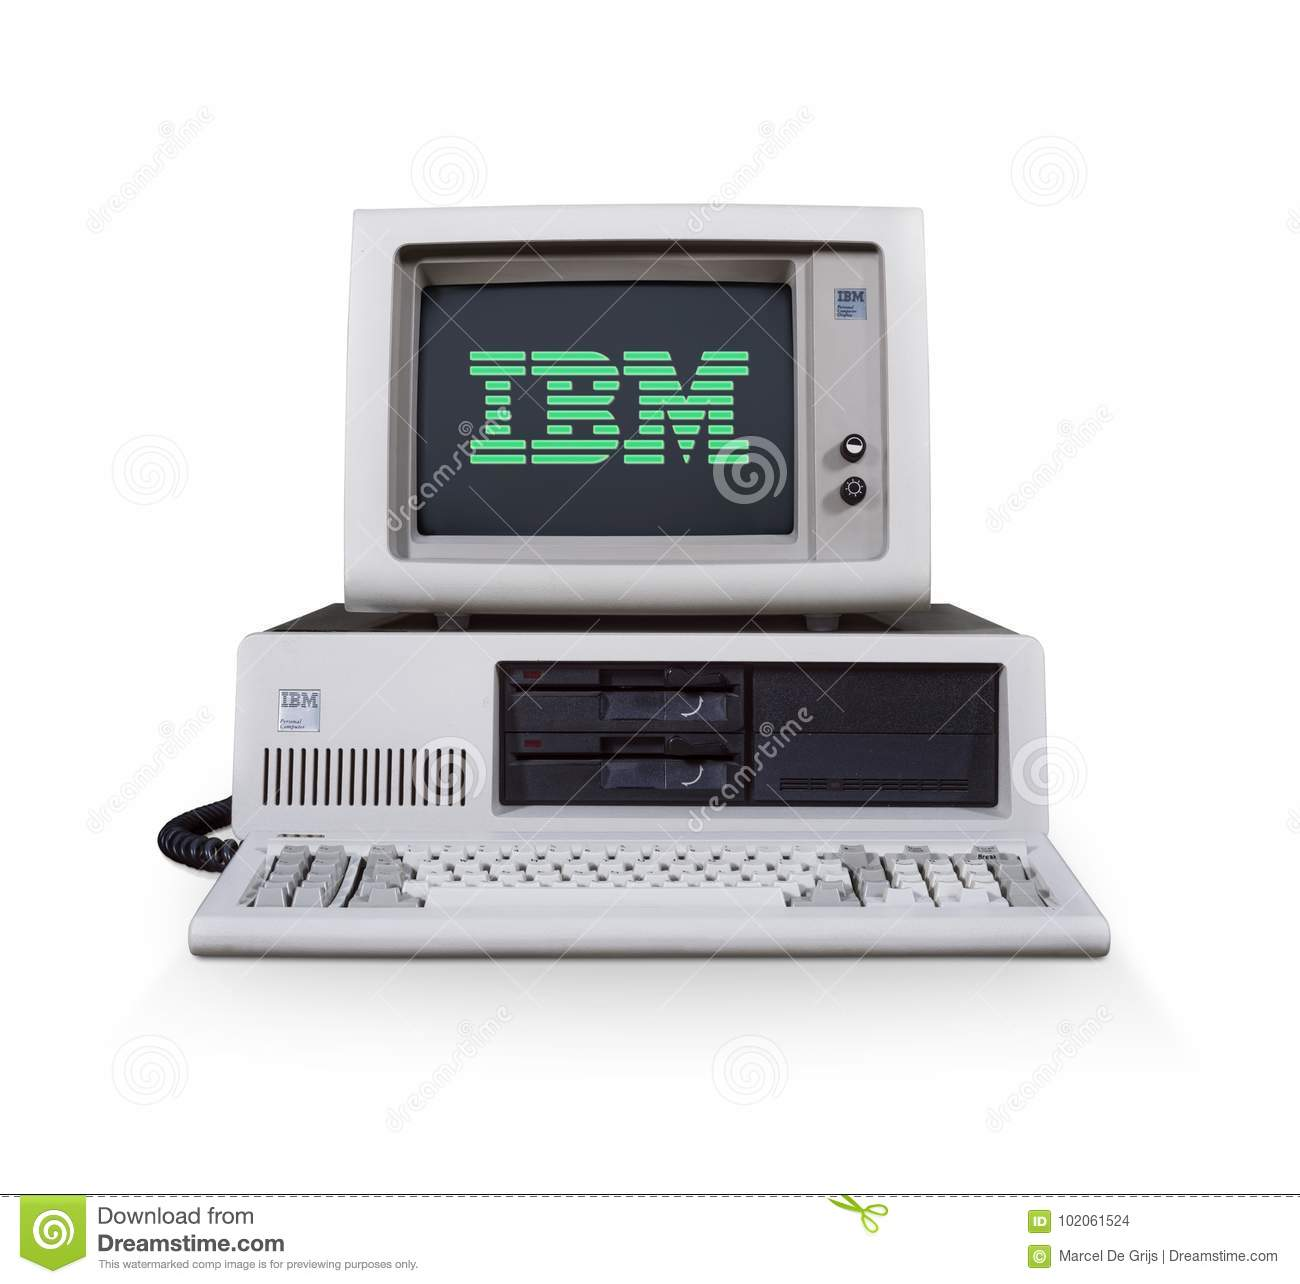 Ordinateur IBM